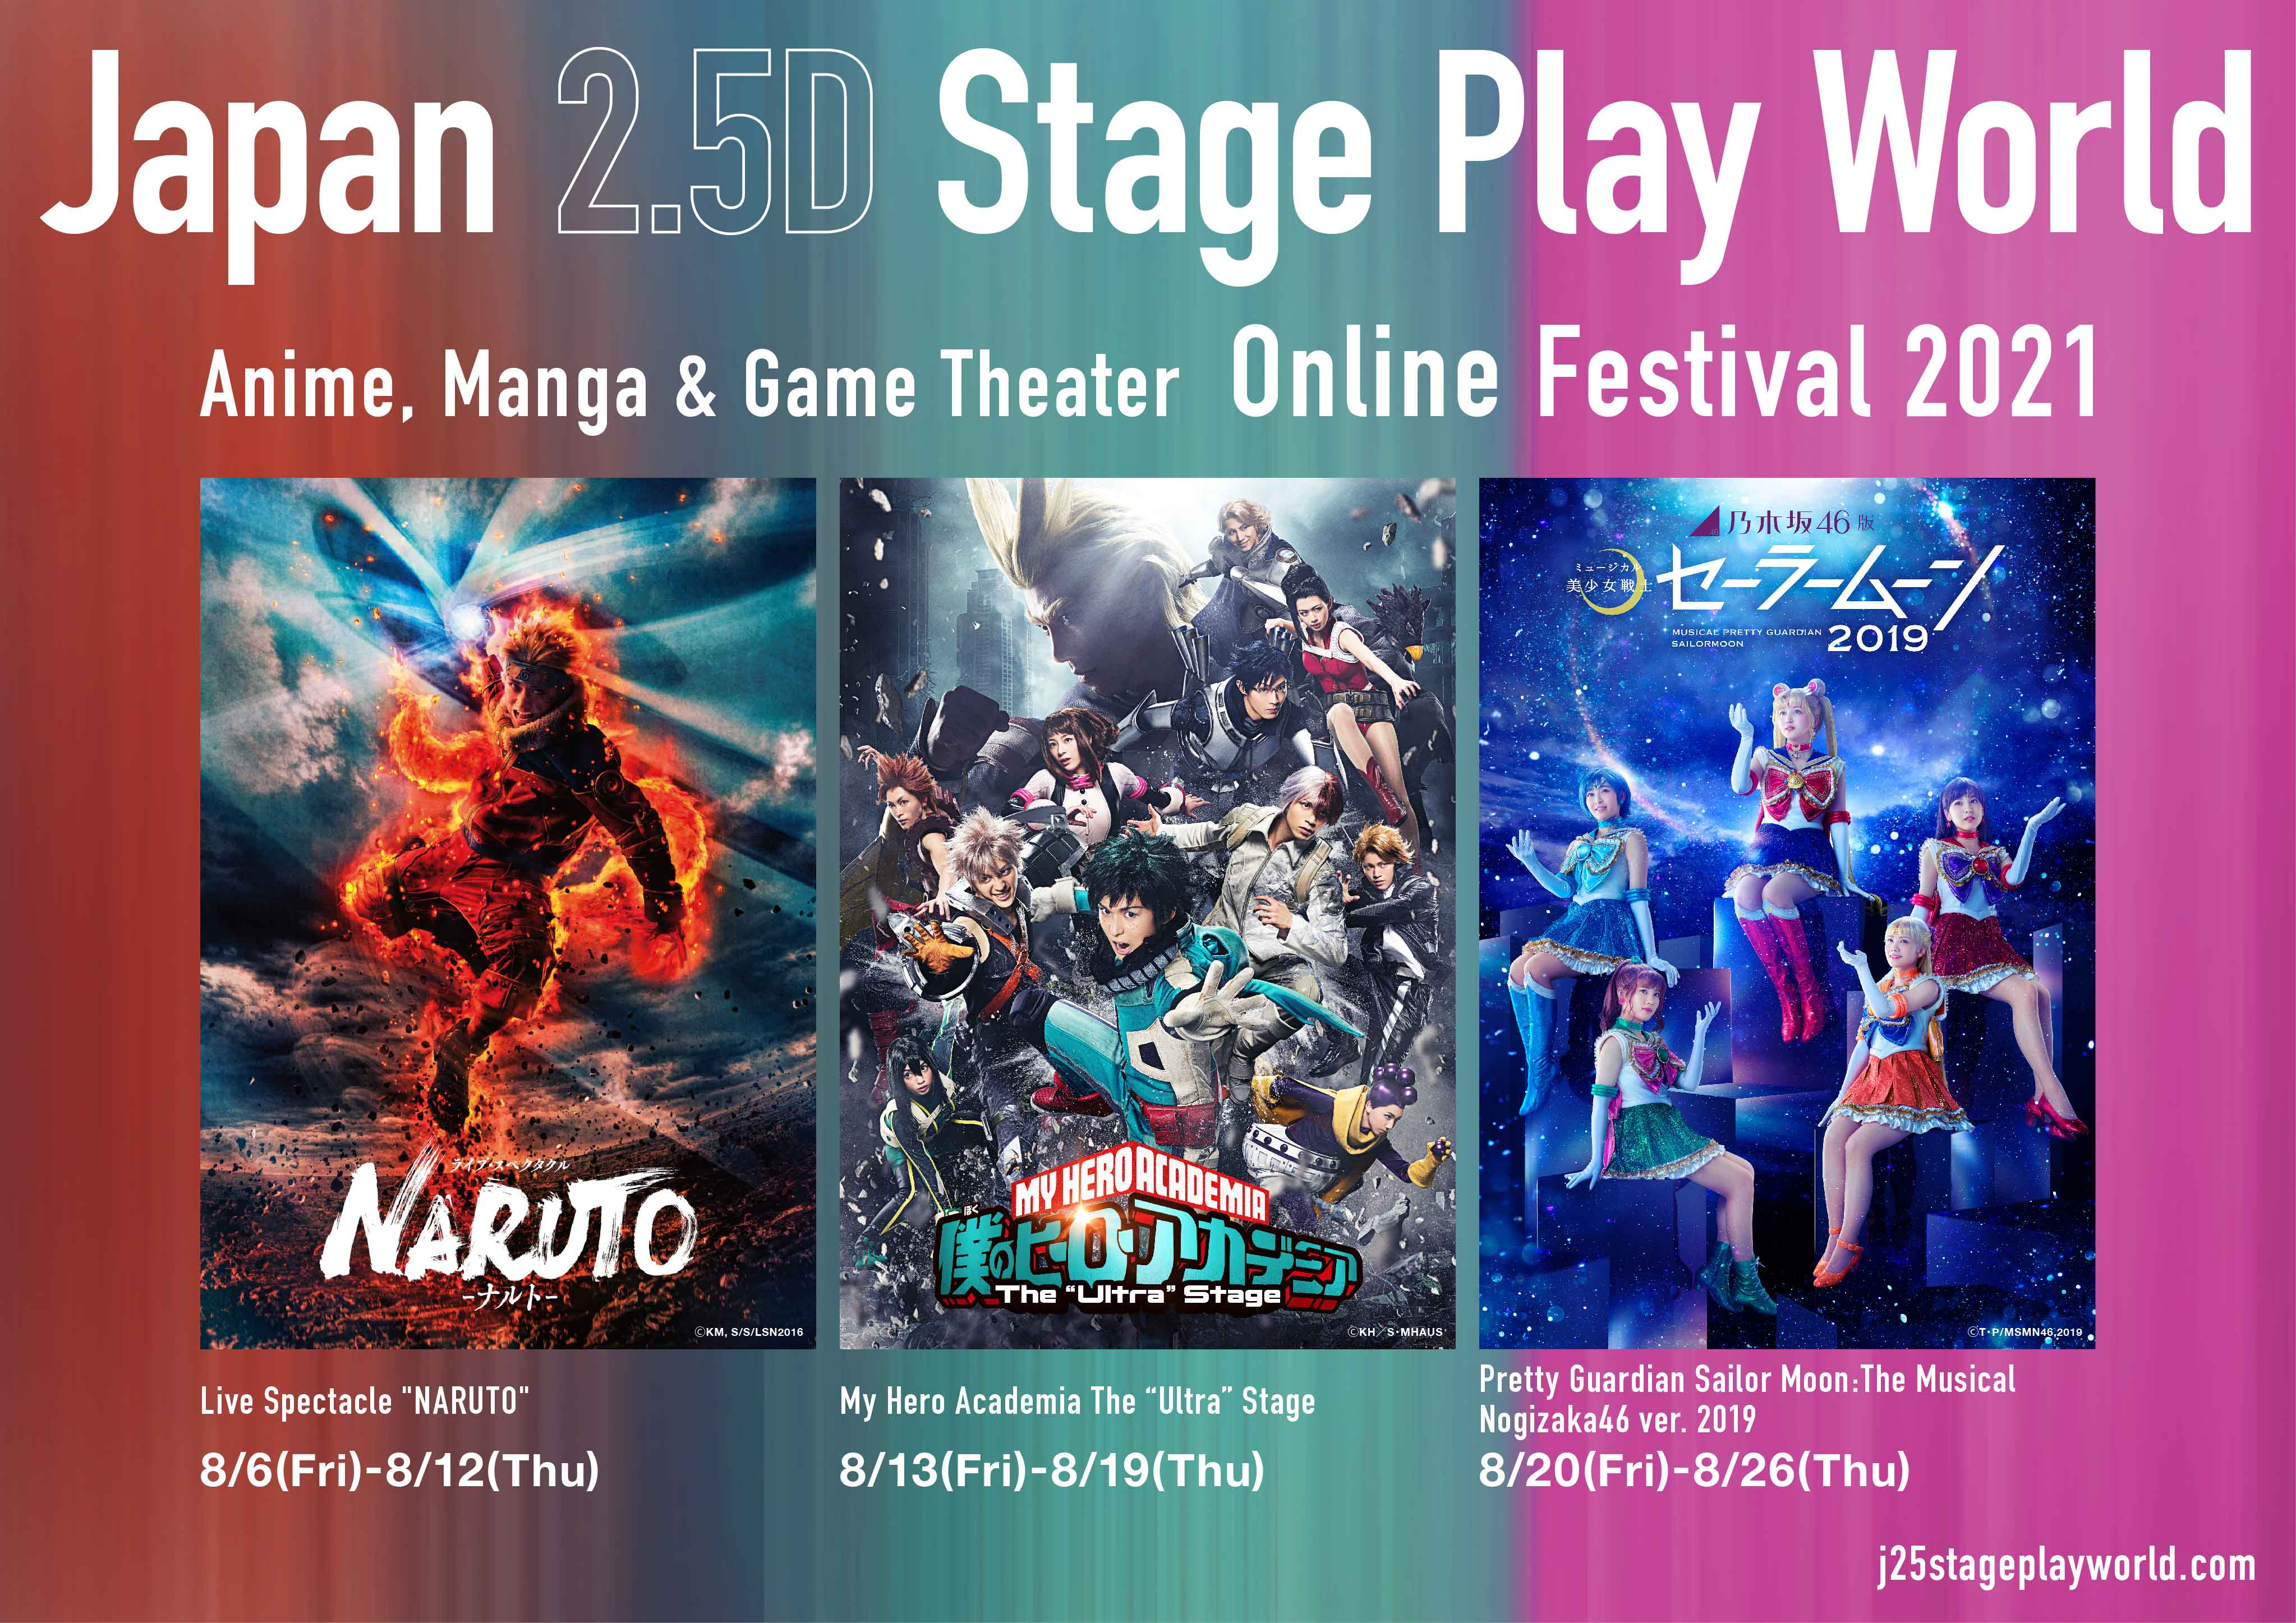 Japan 2.5D Stage Play World